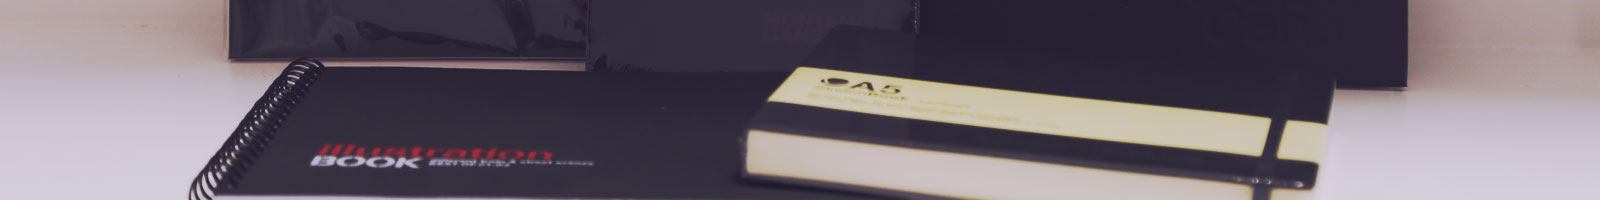 Header-Blackbooks-Creative-Stuff-2